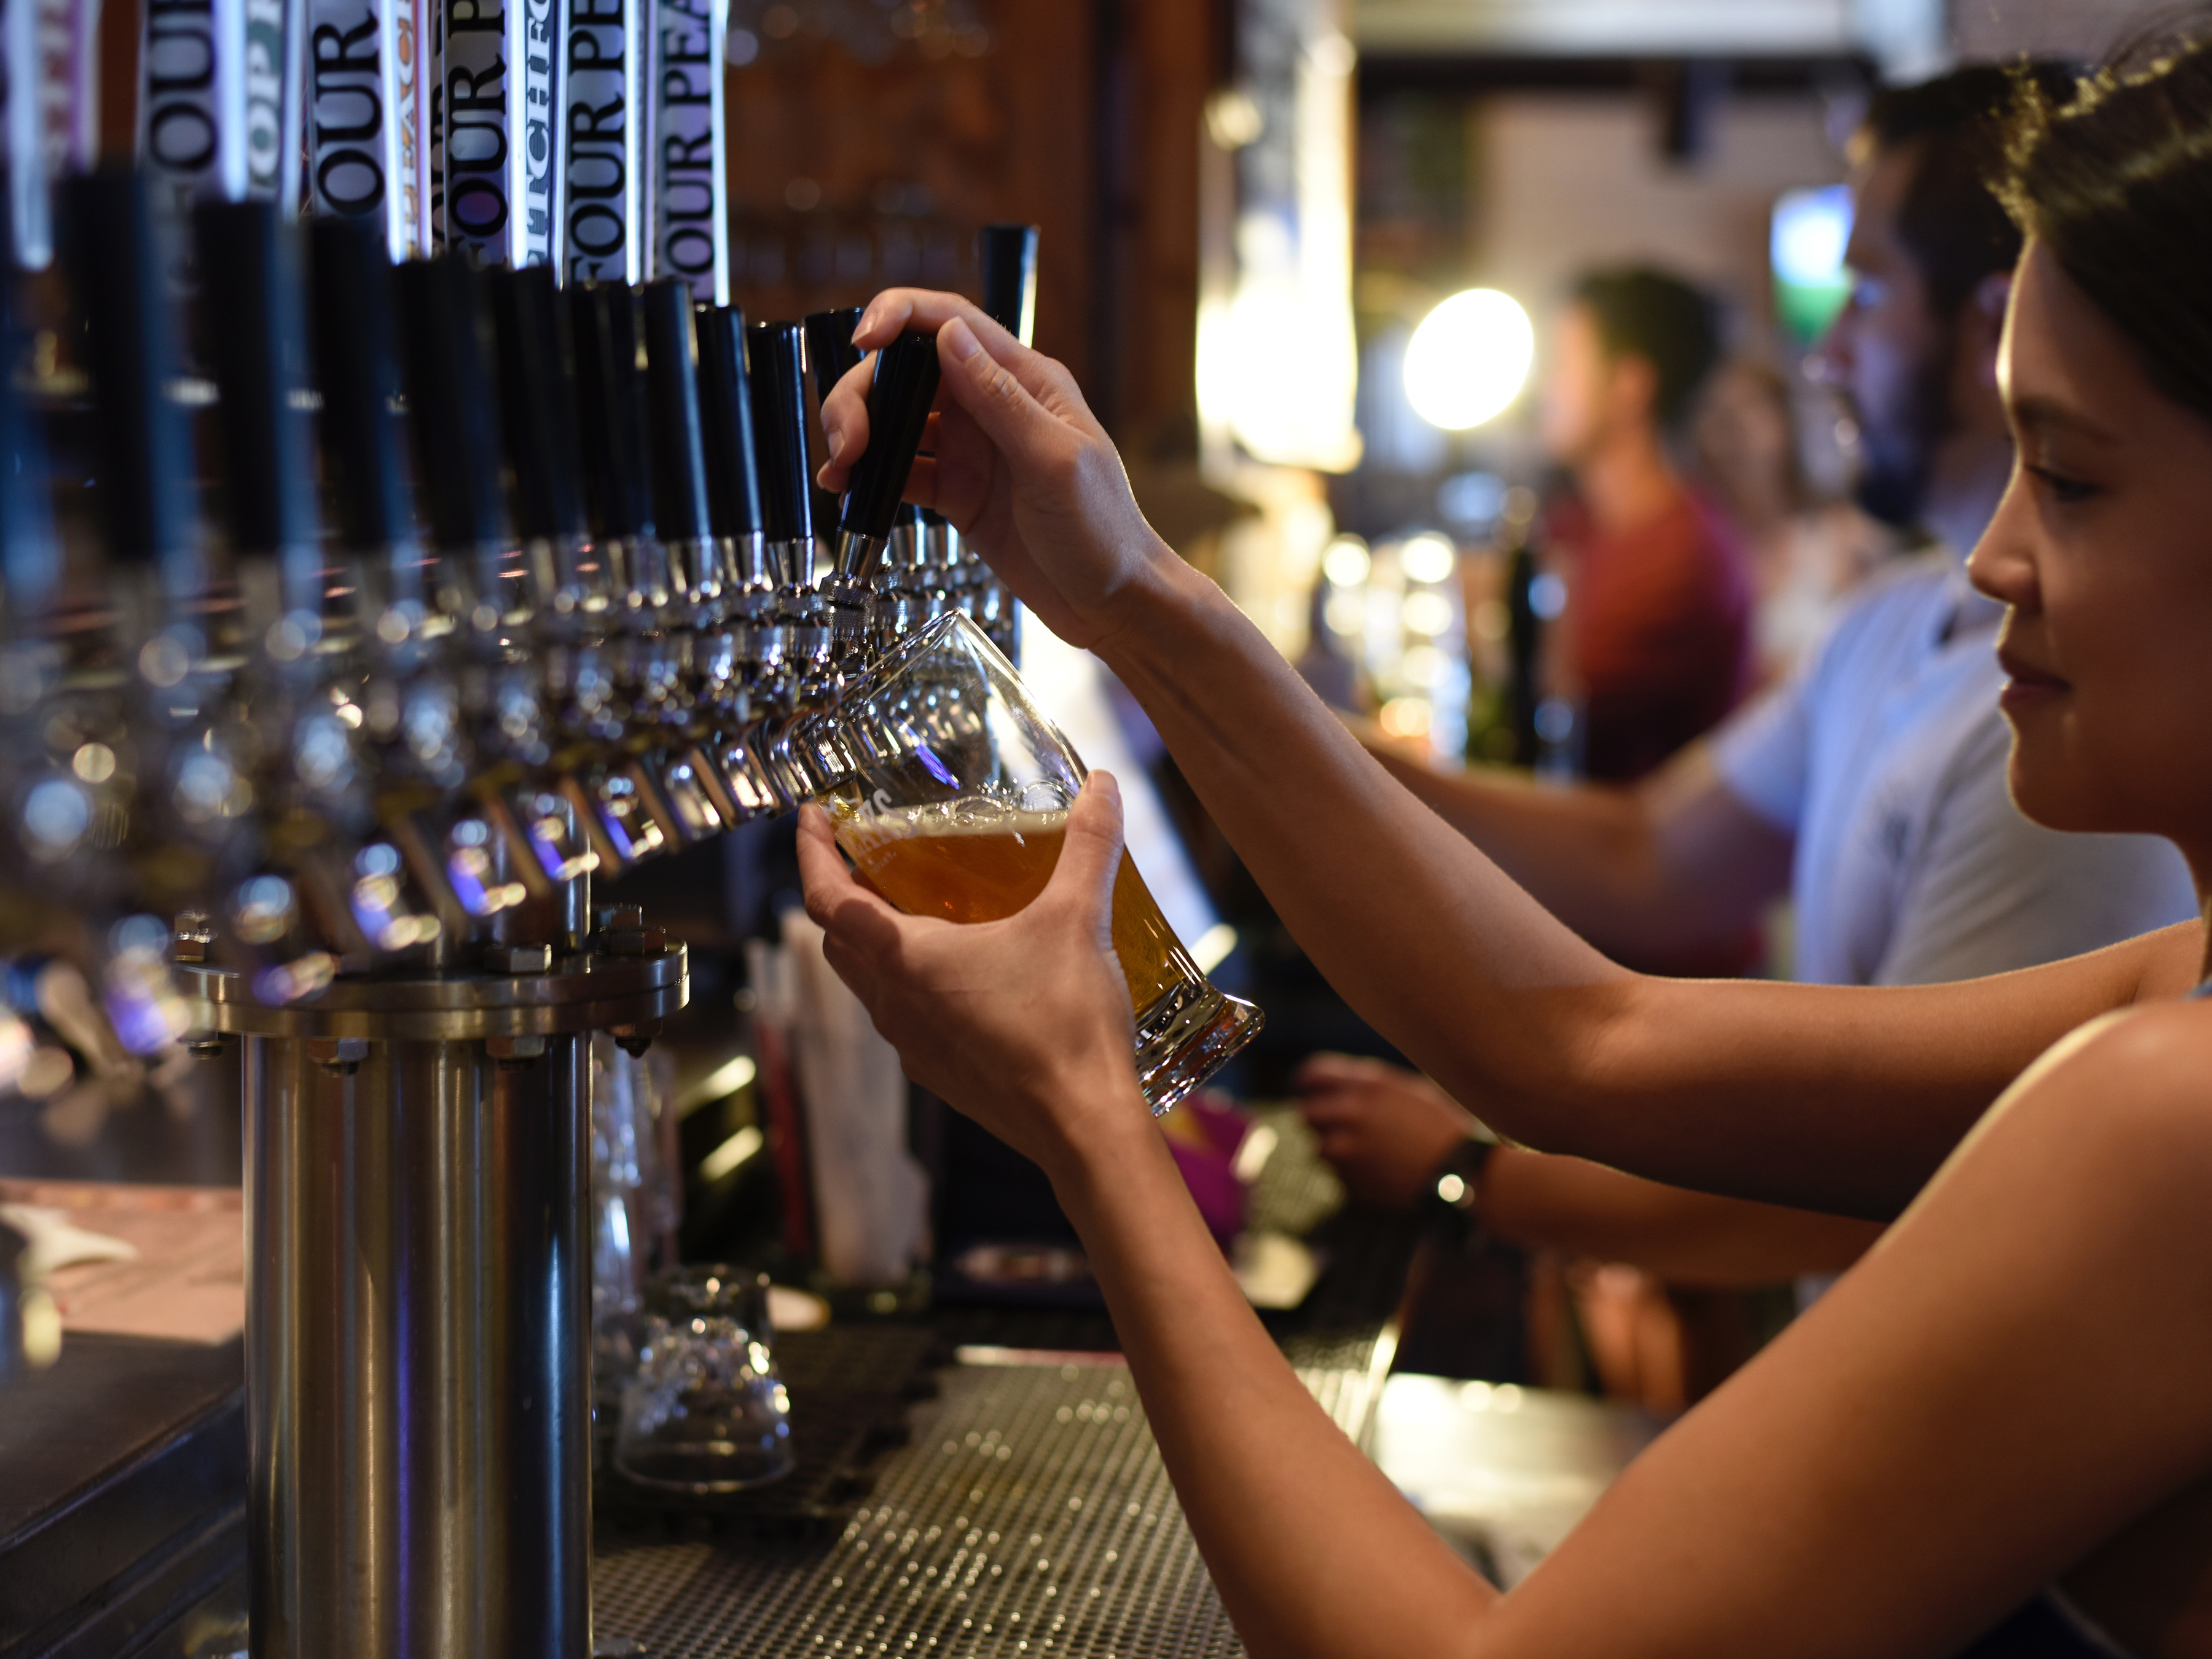 The Craft Beer Boom: How to Satisfy Changing Consumer Tastes